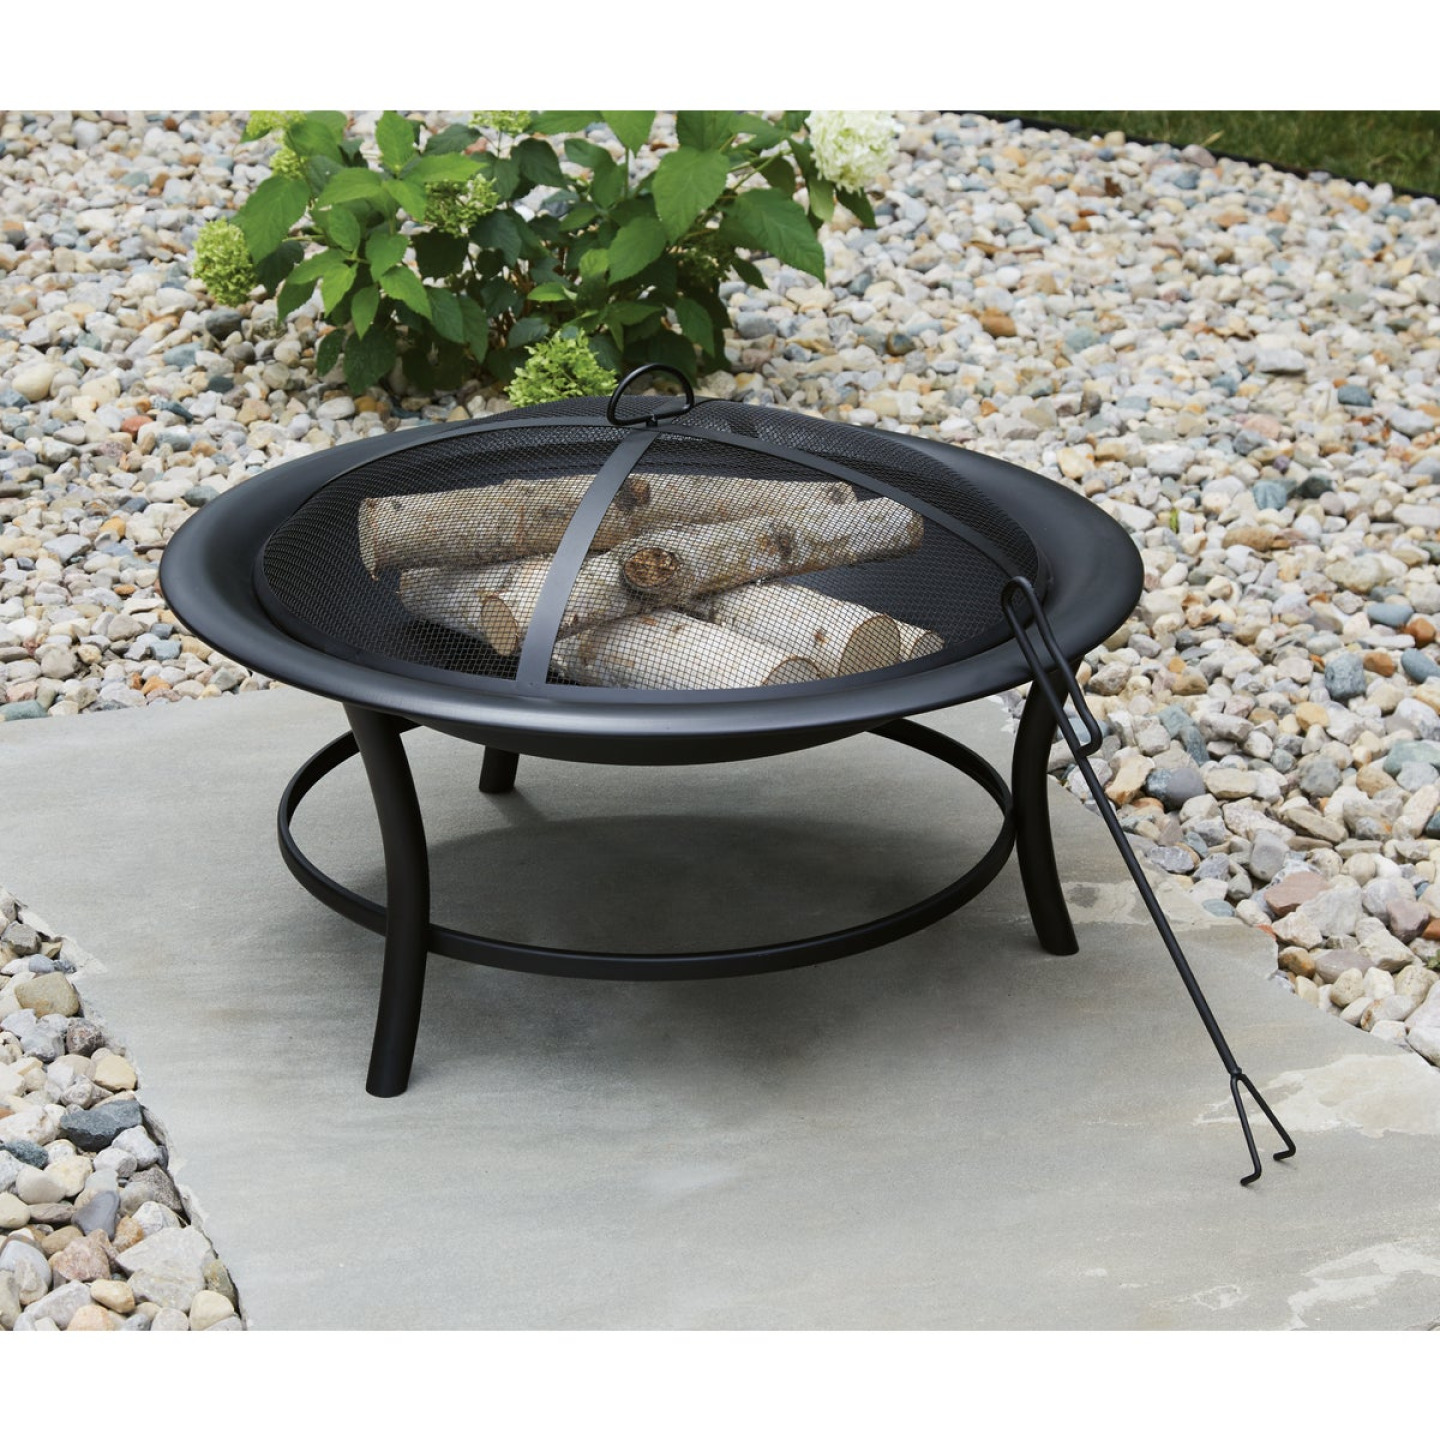 Outdoor Expressions 30 In. Round Steel Fire Pit Image 3